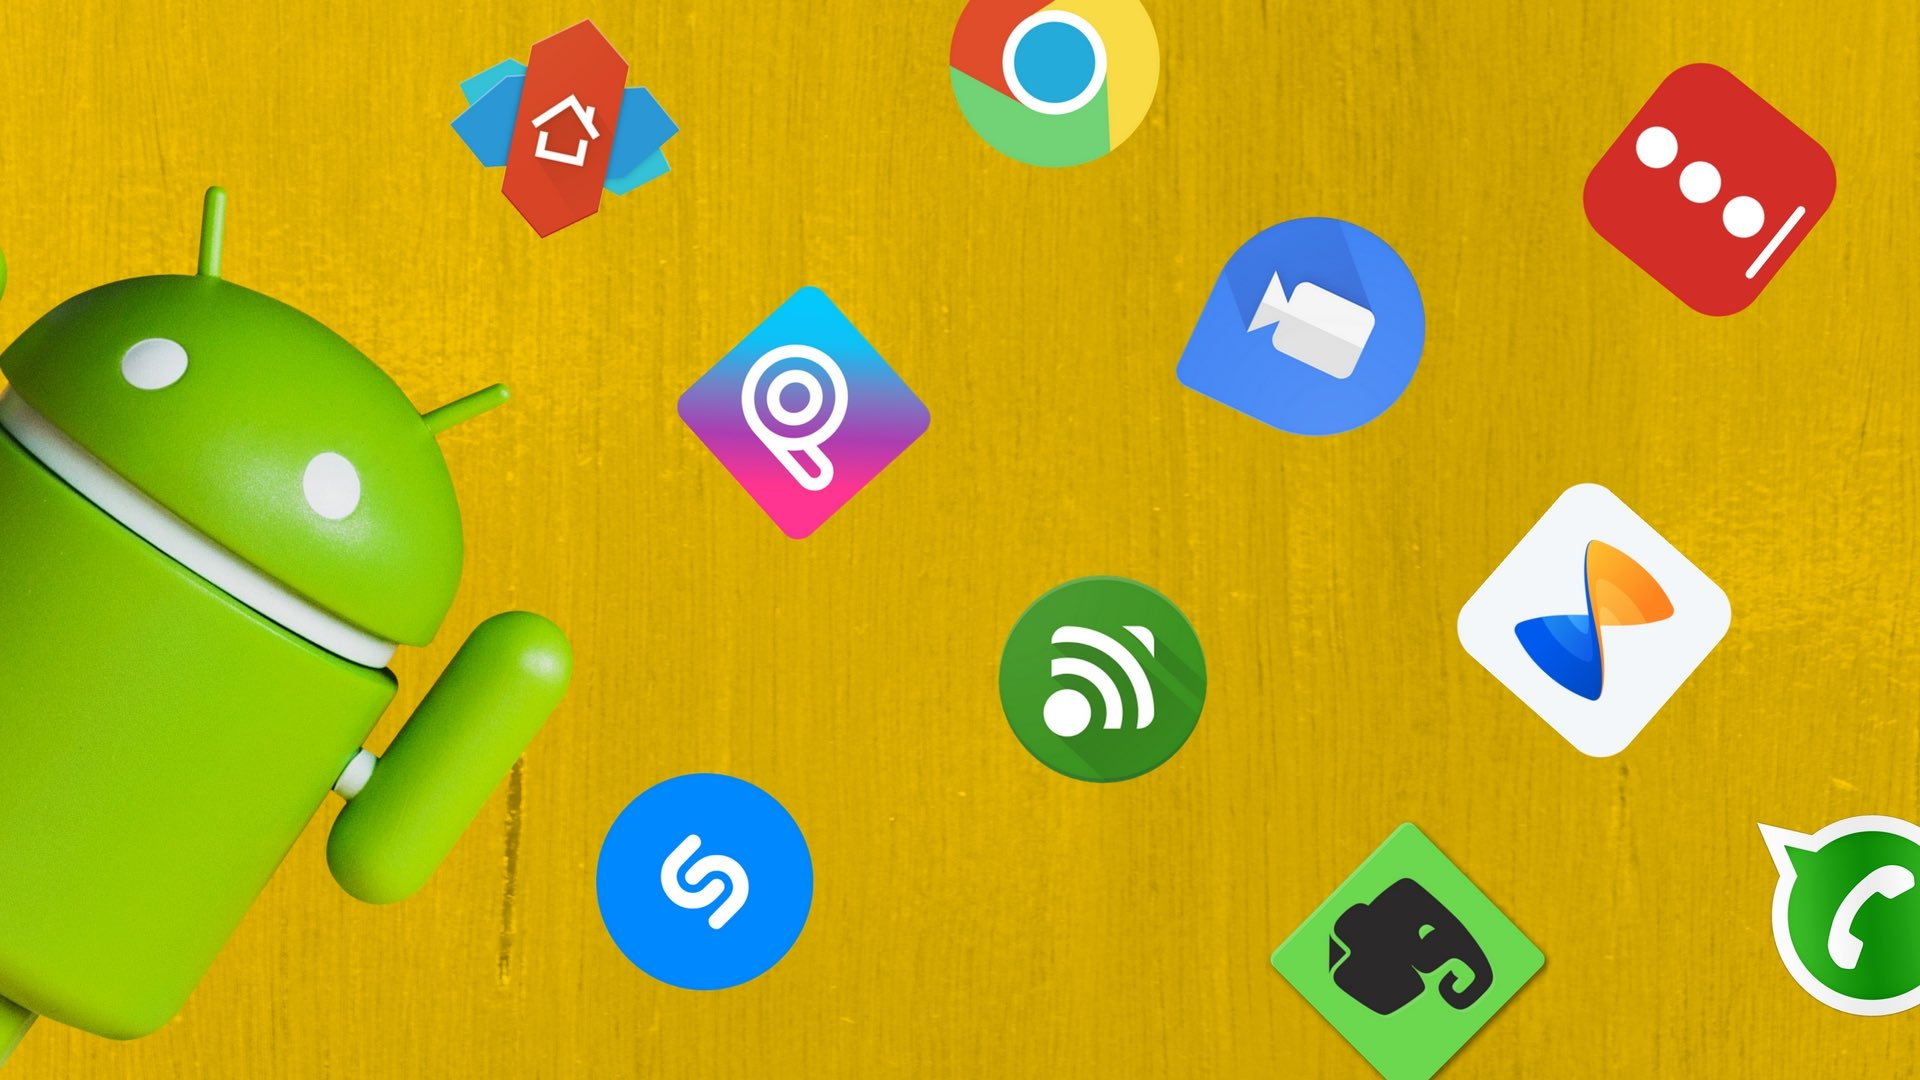 24 Free And Best Android Apps For 2020 | Get The Most Out Of Your Phone